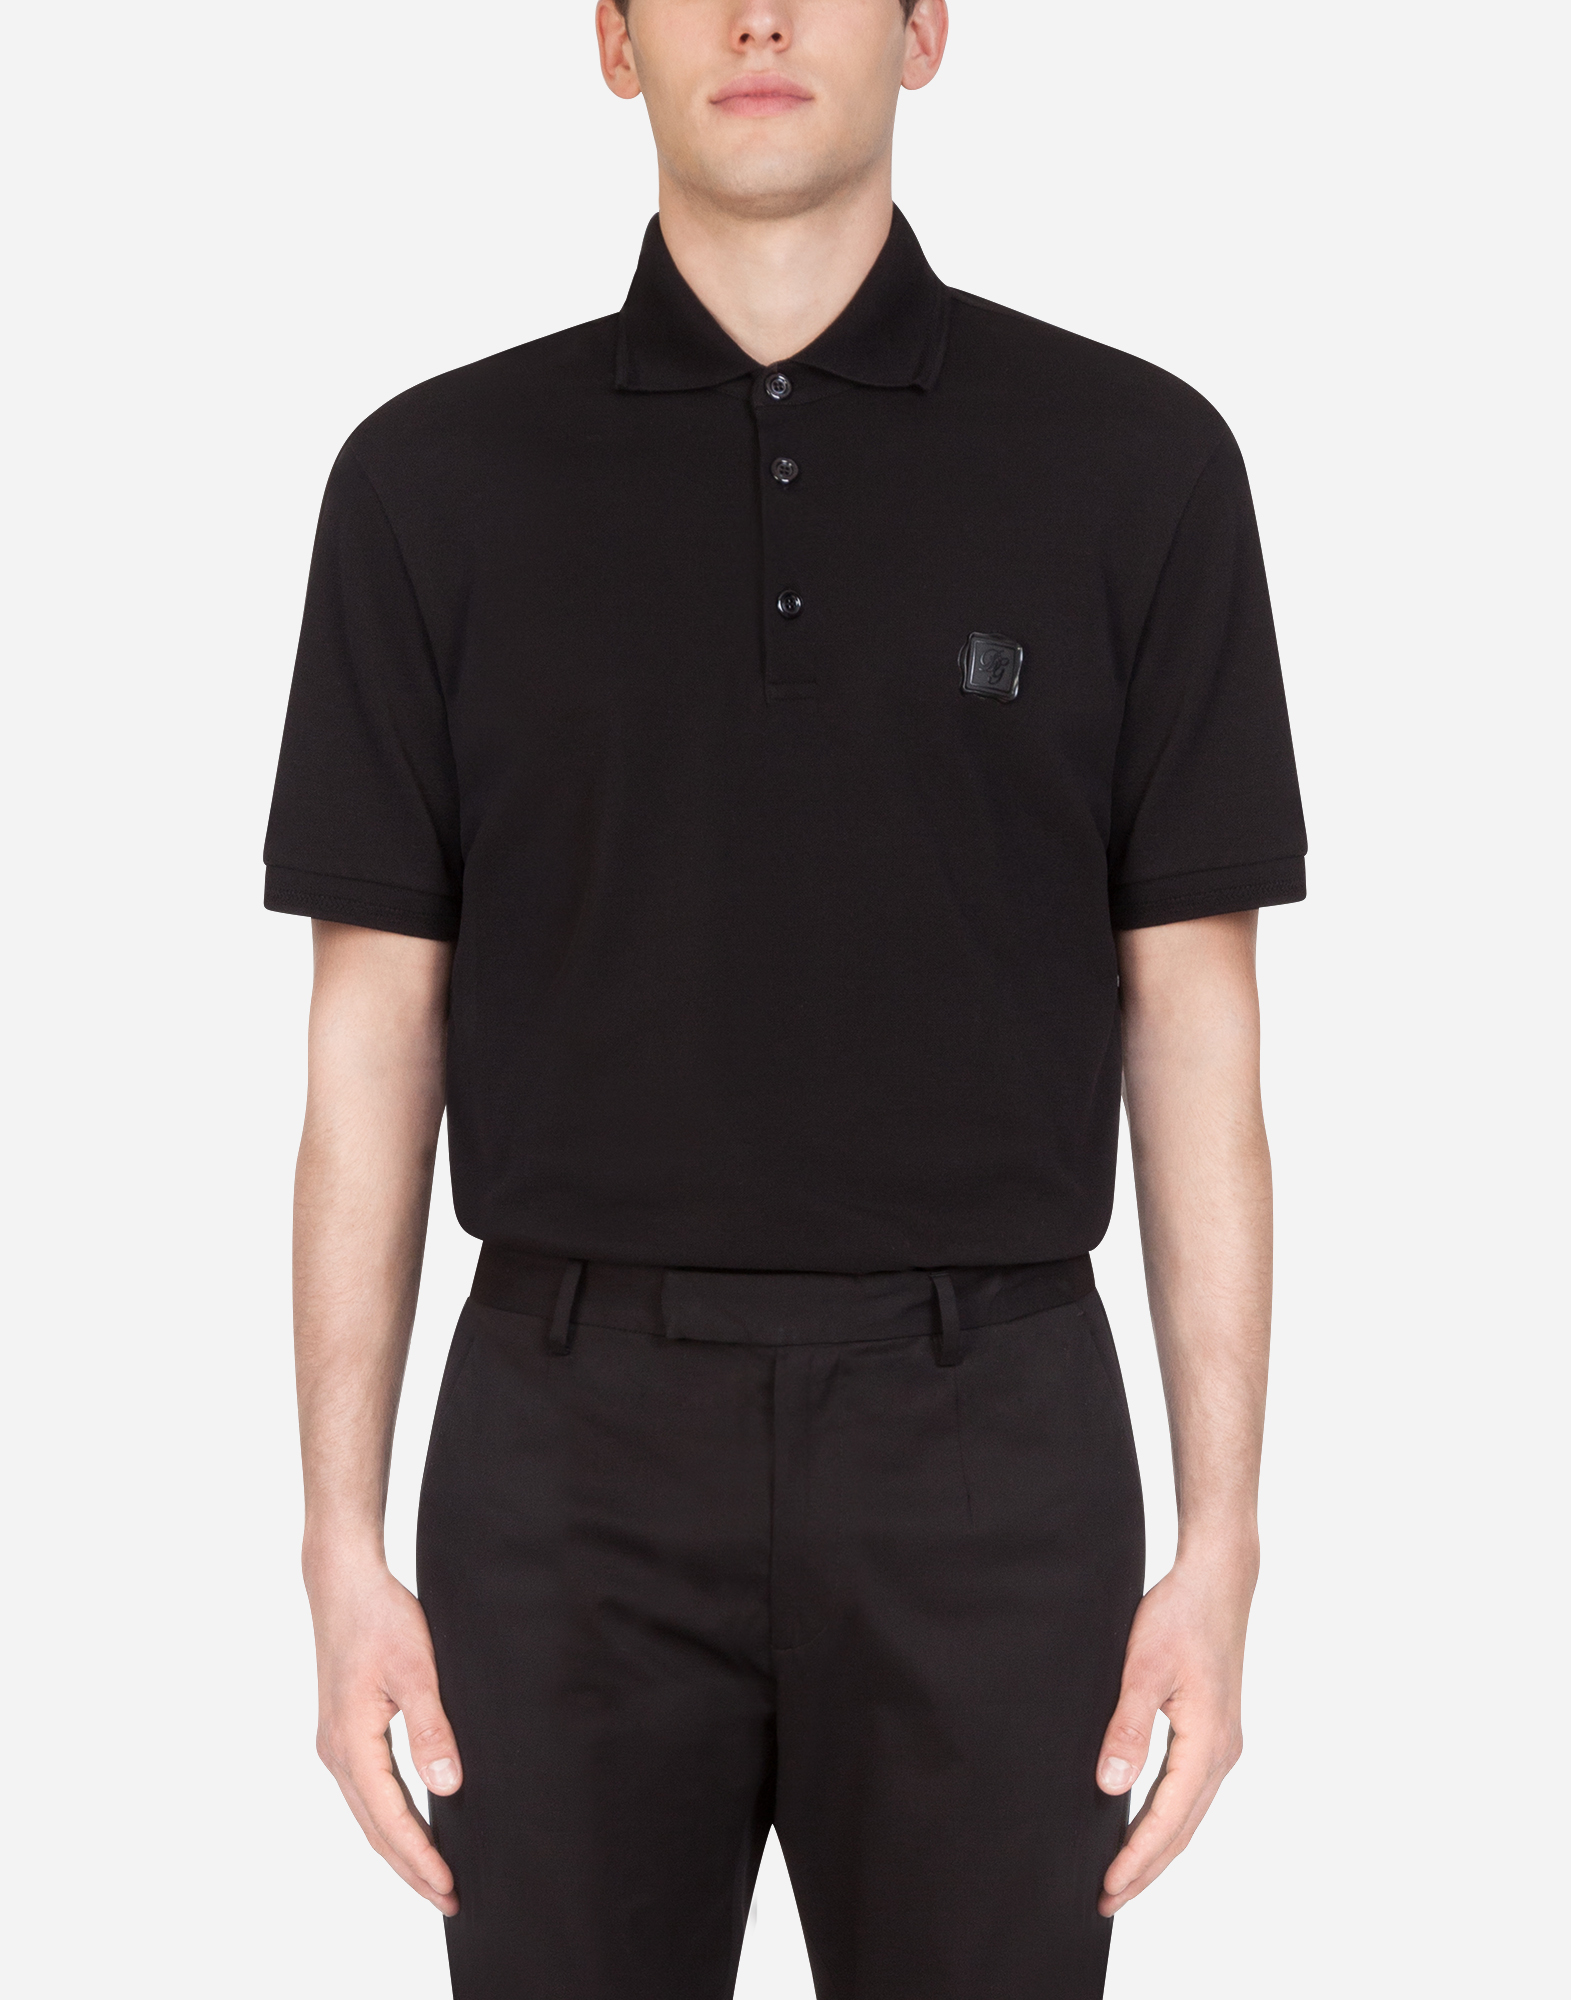 Dolce & Gabbana Cotton Piqué Polo Shirt With Branded Plate In Black